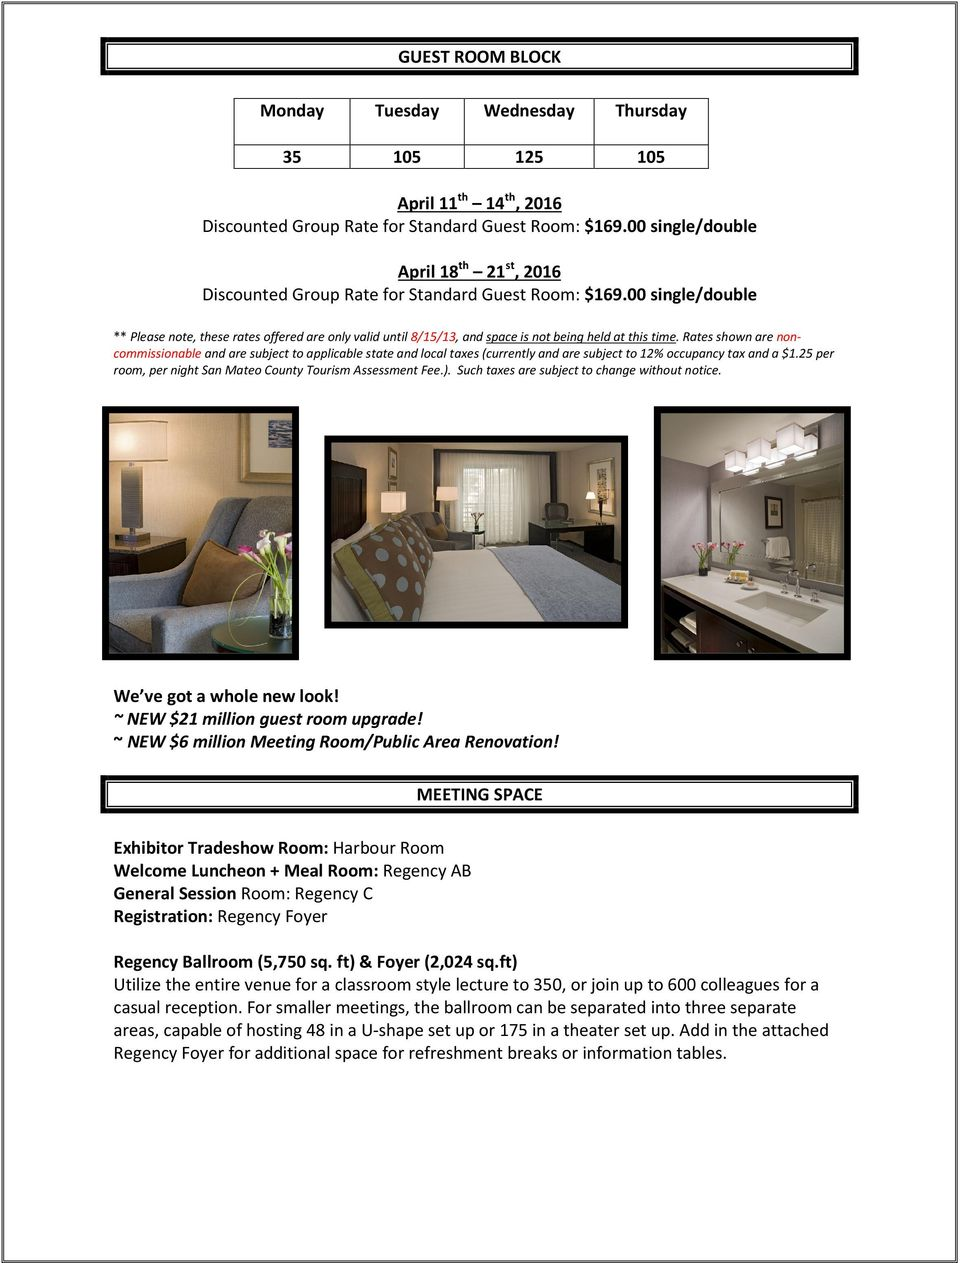 00 single/double ** Please note, these rates offered are only valid until 8/15/13, and space is not being held at this time.